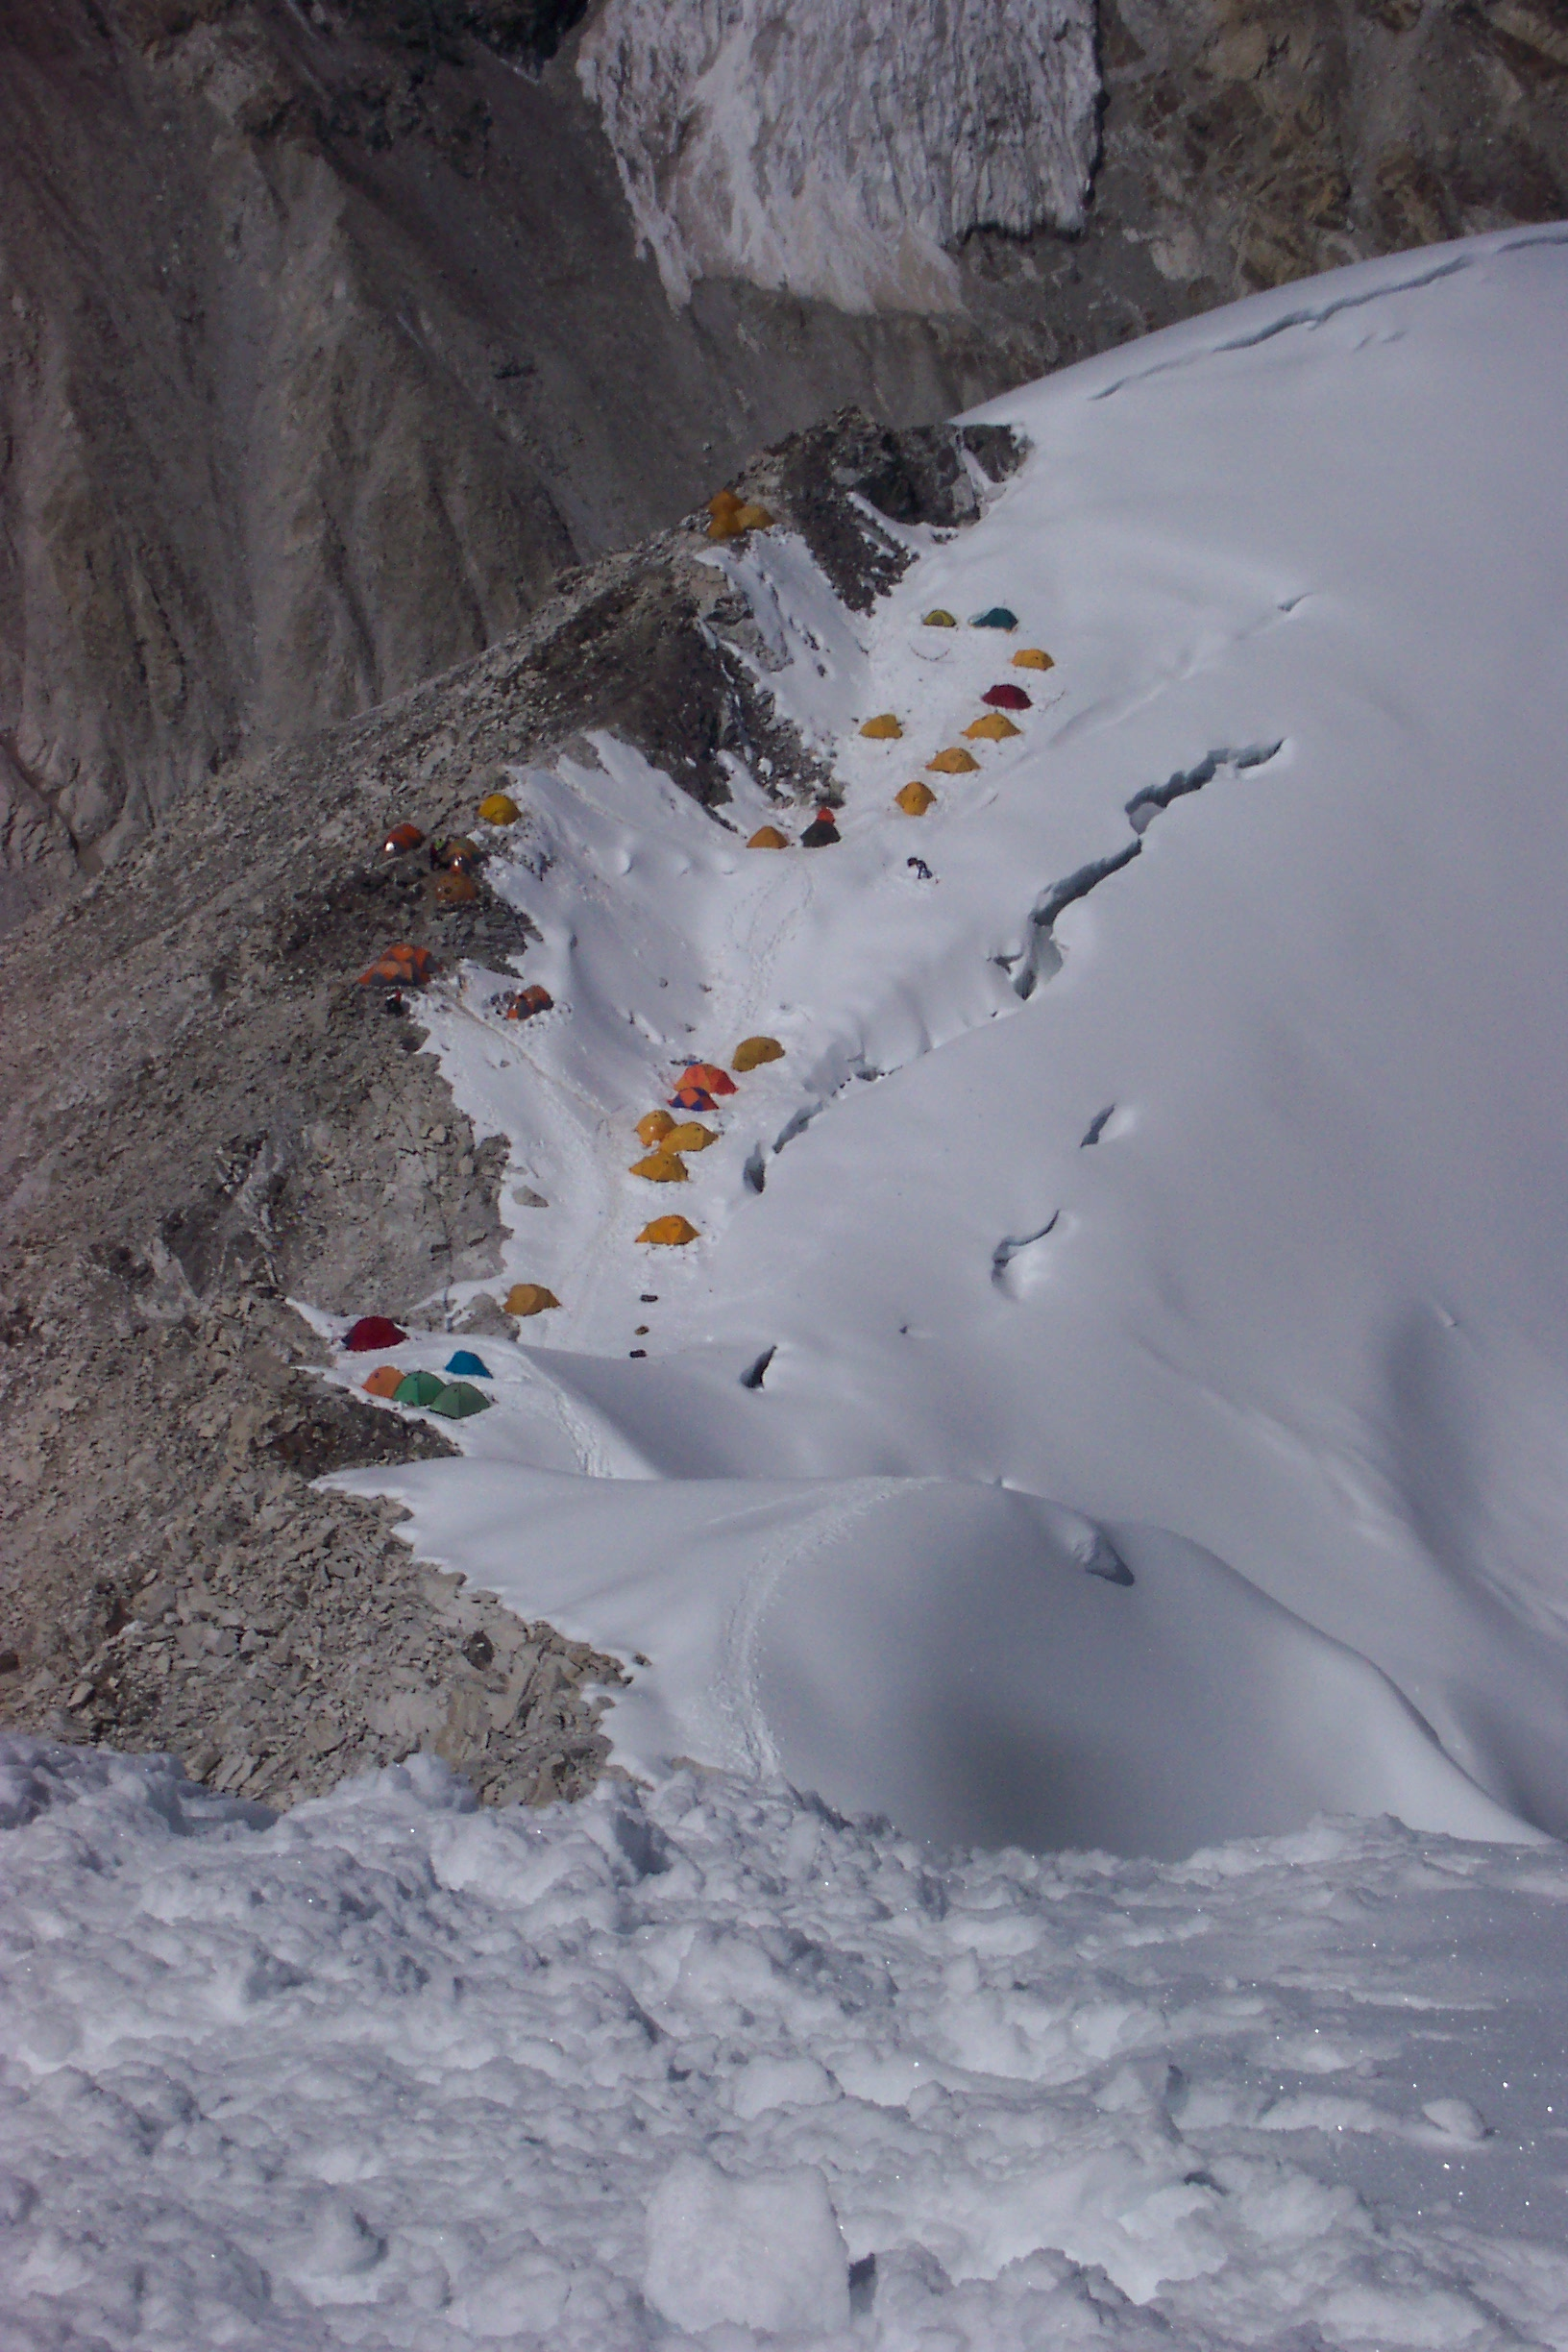 Everest 2009 American Nancy Norris Seeks To Become The